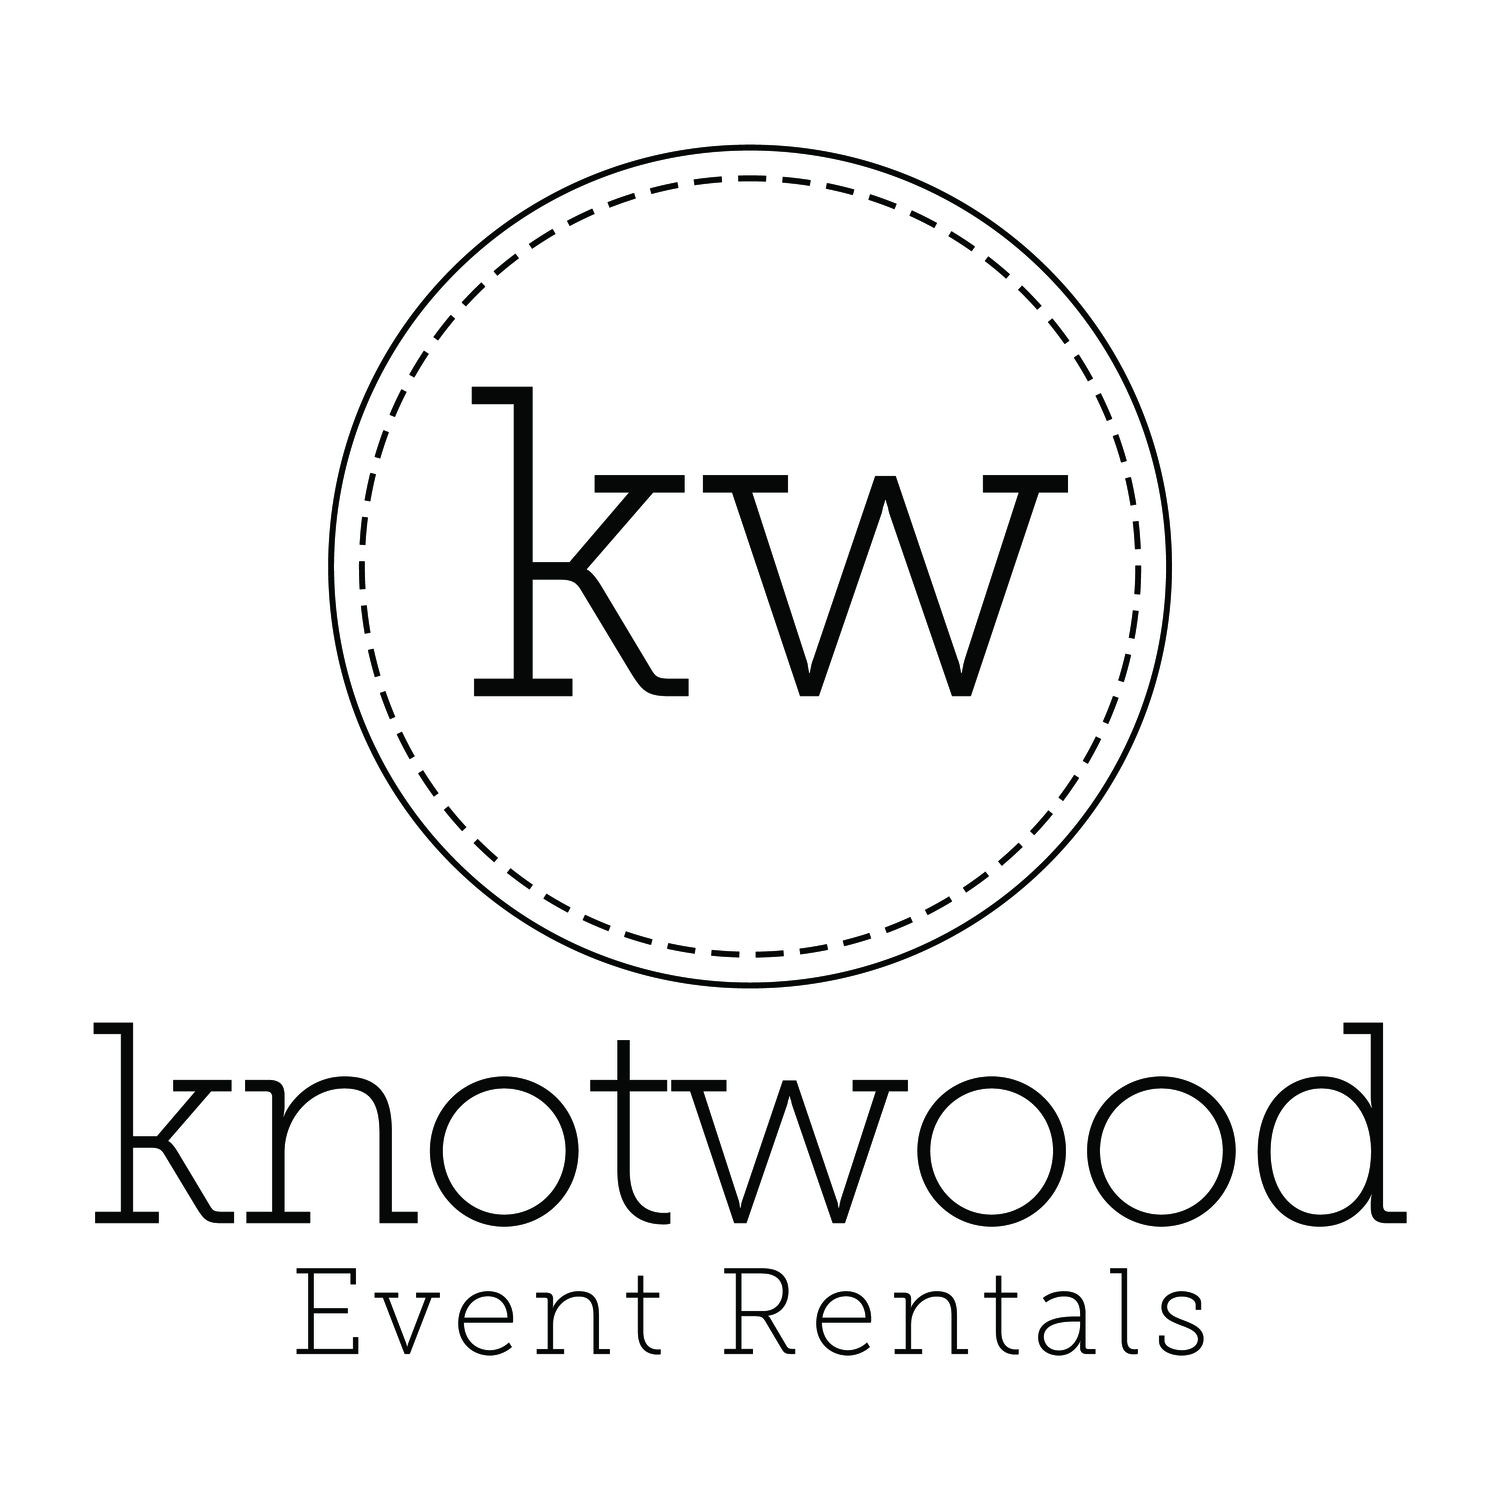 Knotwood Event Rentals and Decor